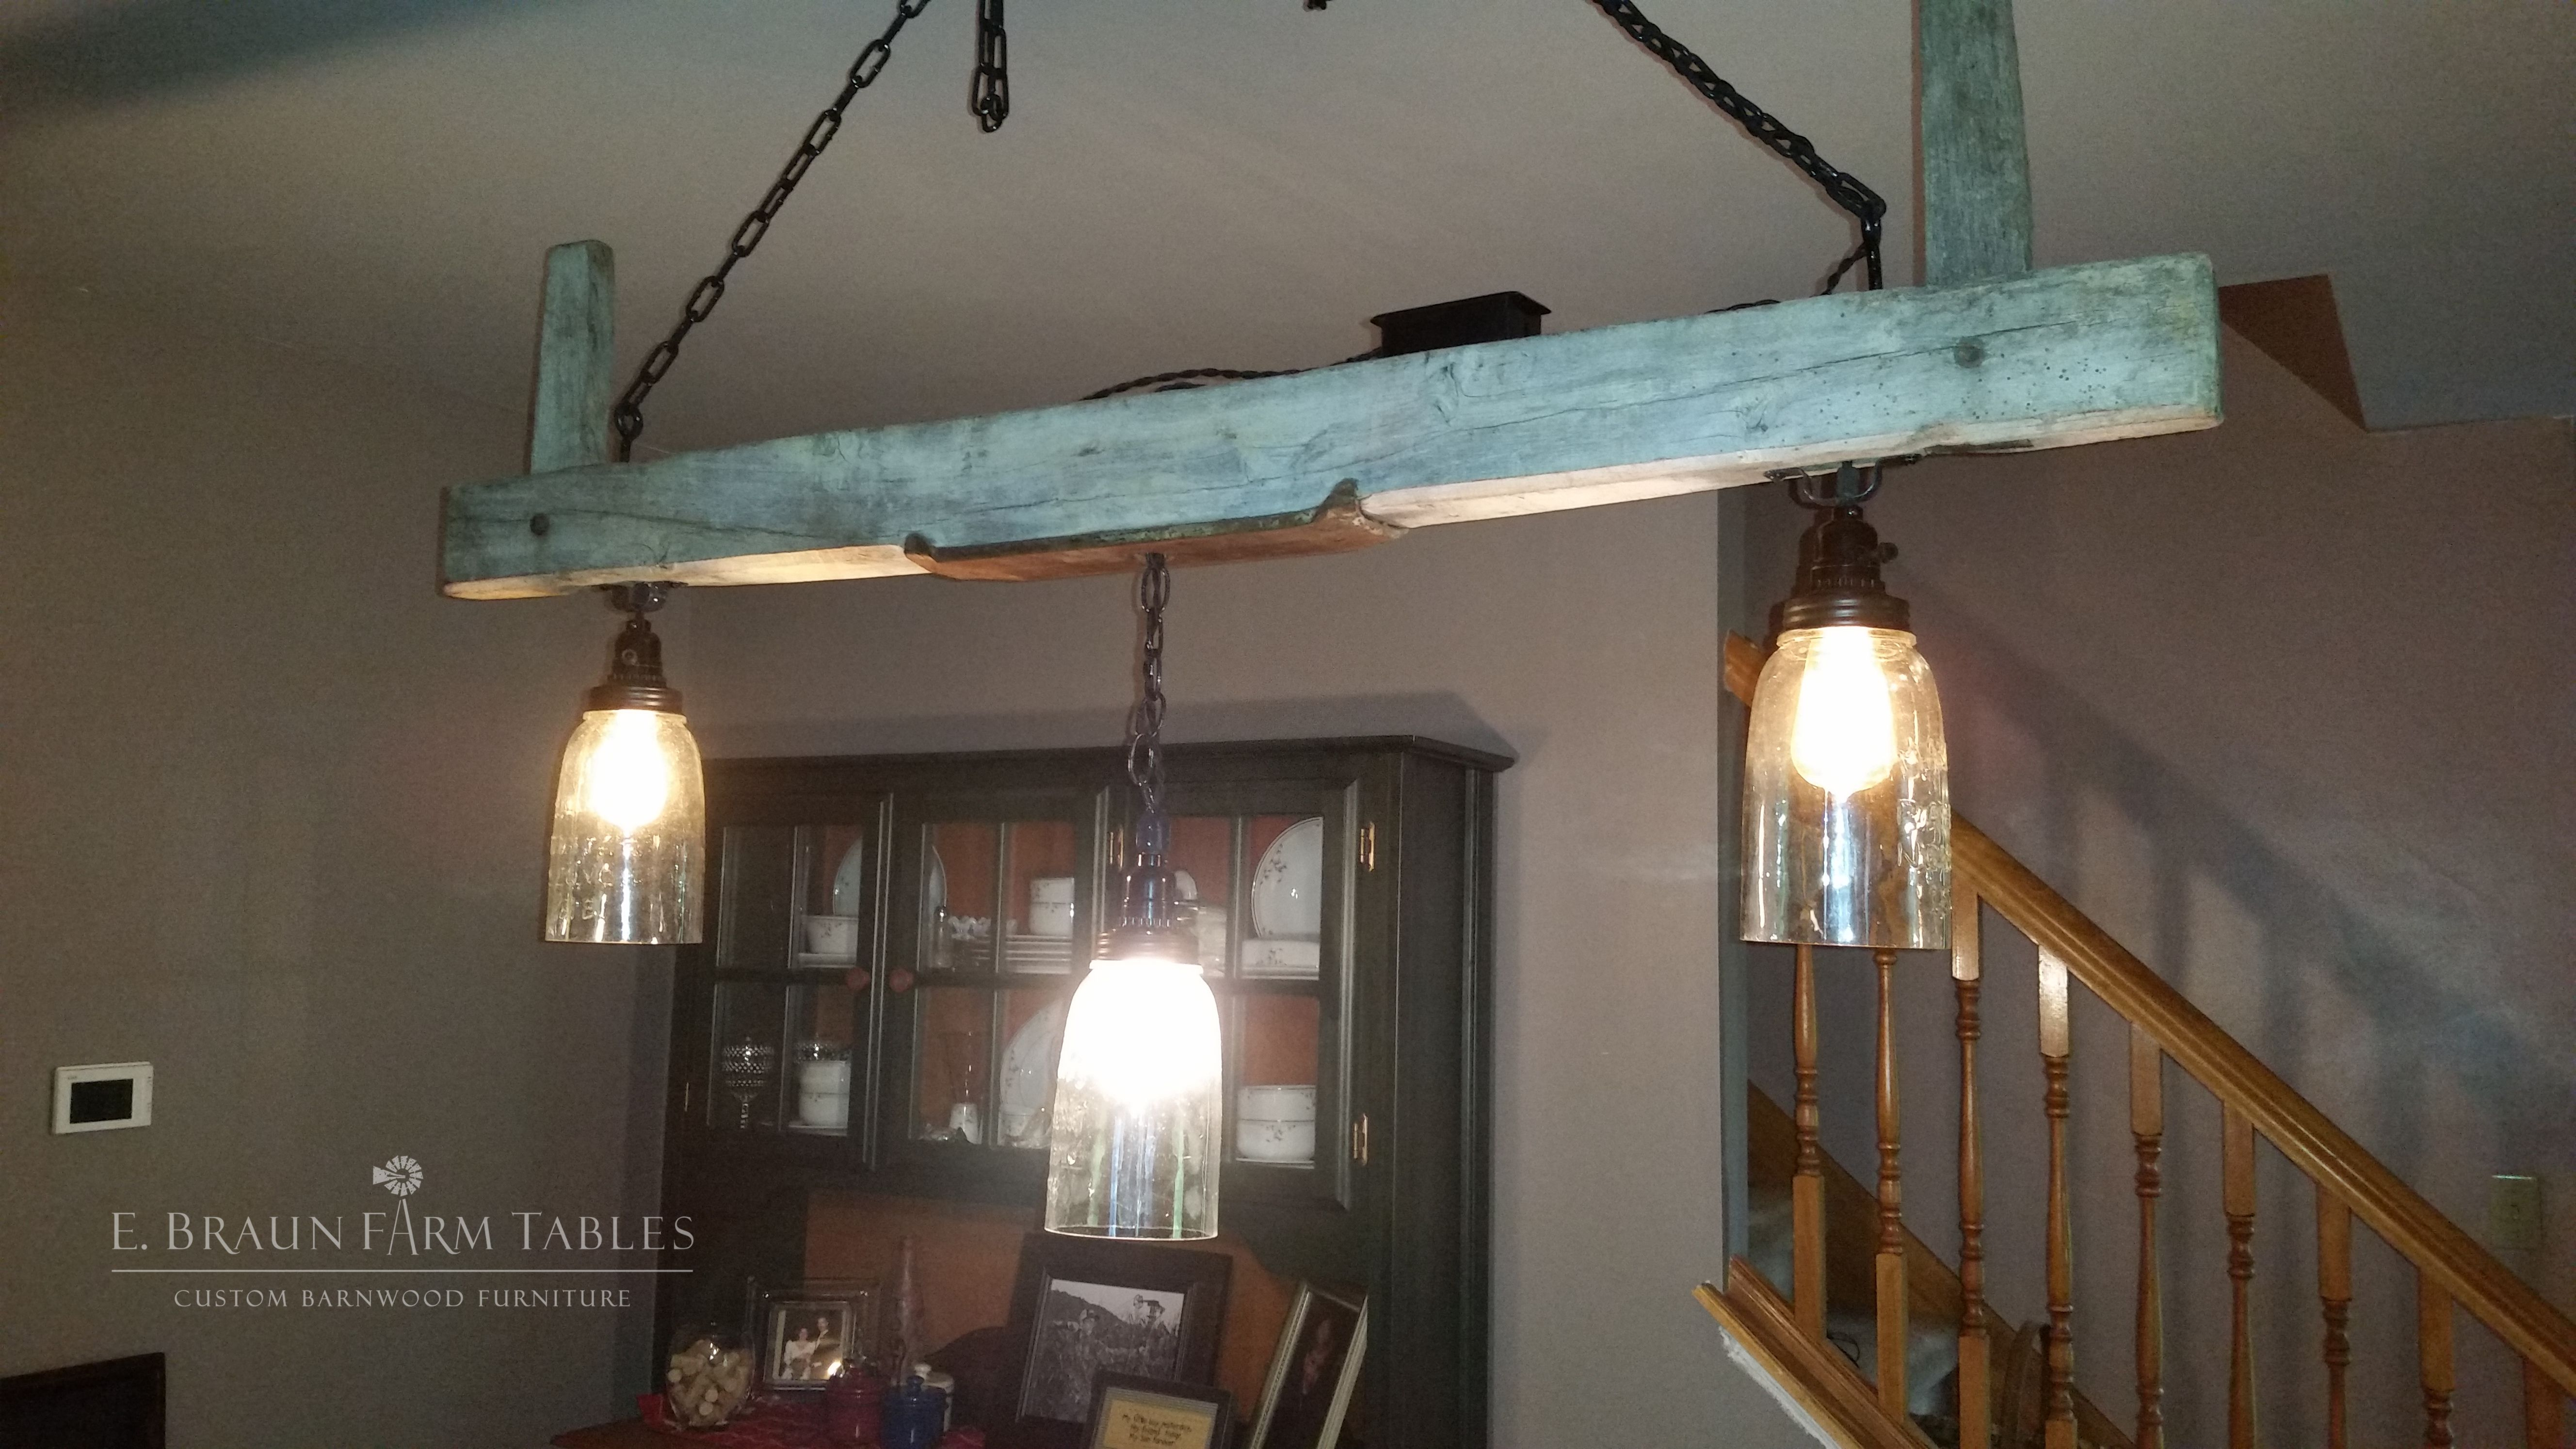 Barn Beam Hanging Lights Our Customers Are So Creative This Customer Purchased A Reclaimed Wood Beam From E Braun Farm In 2020 Barn Beams Farm Table Hanging Lights